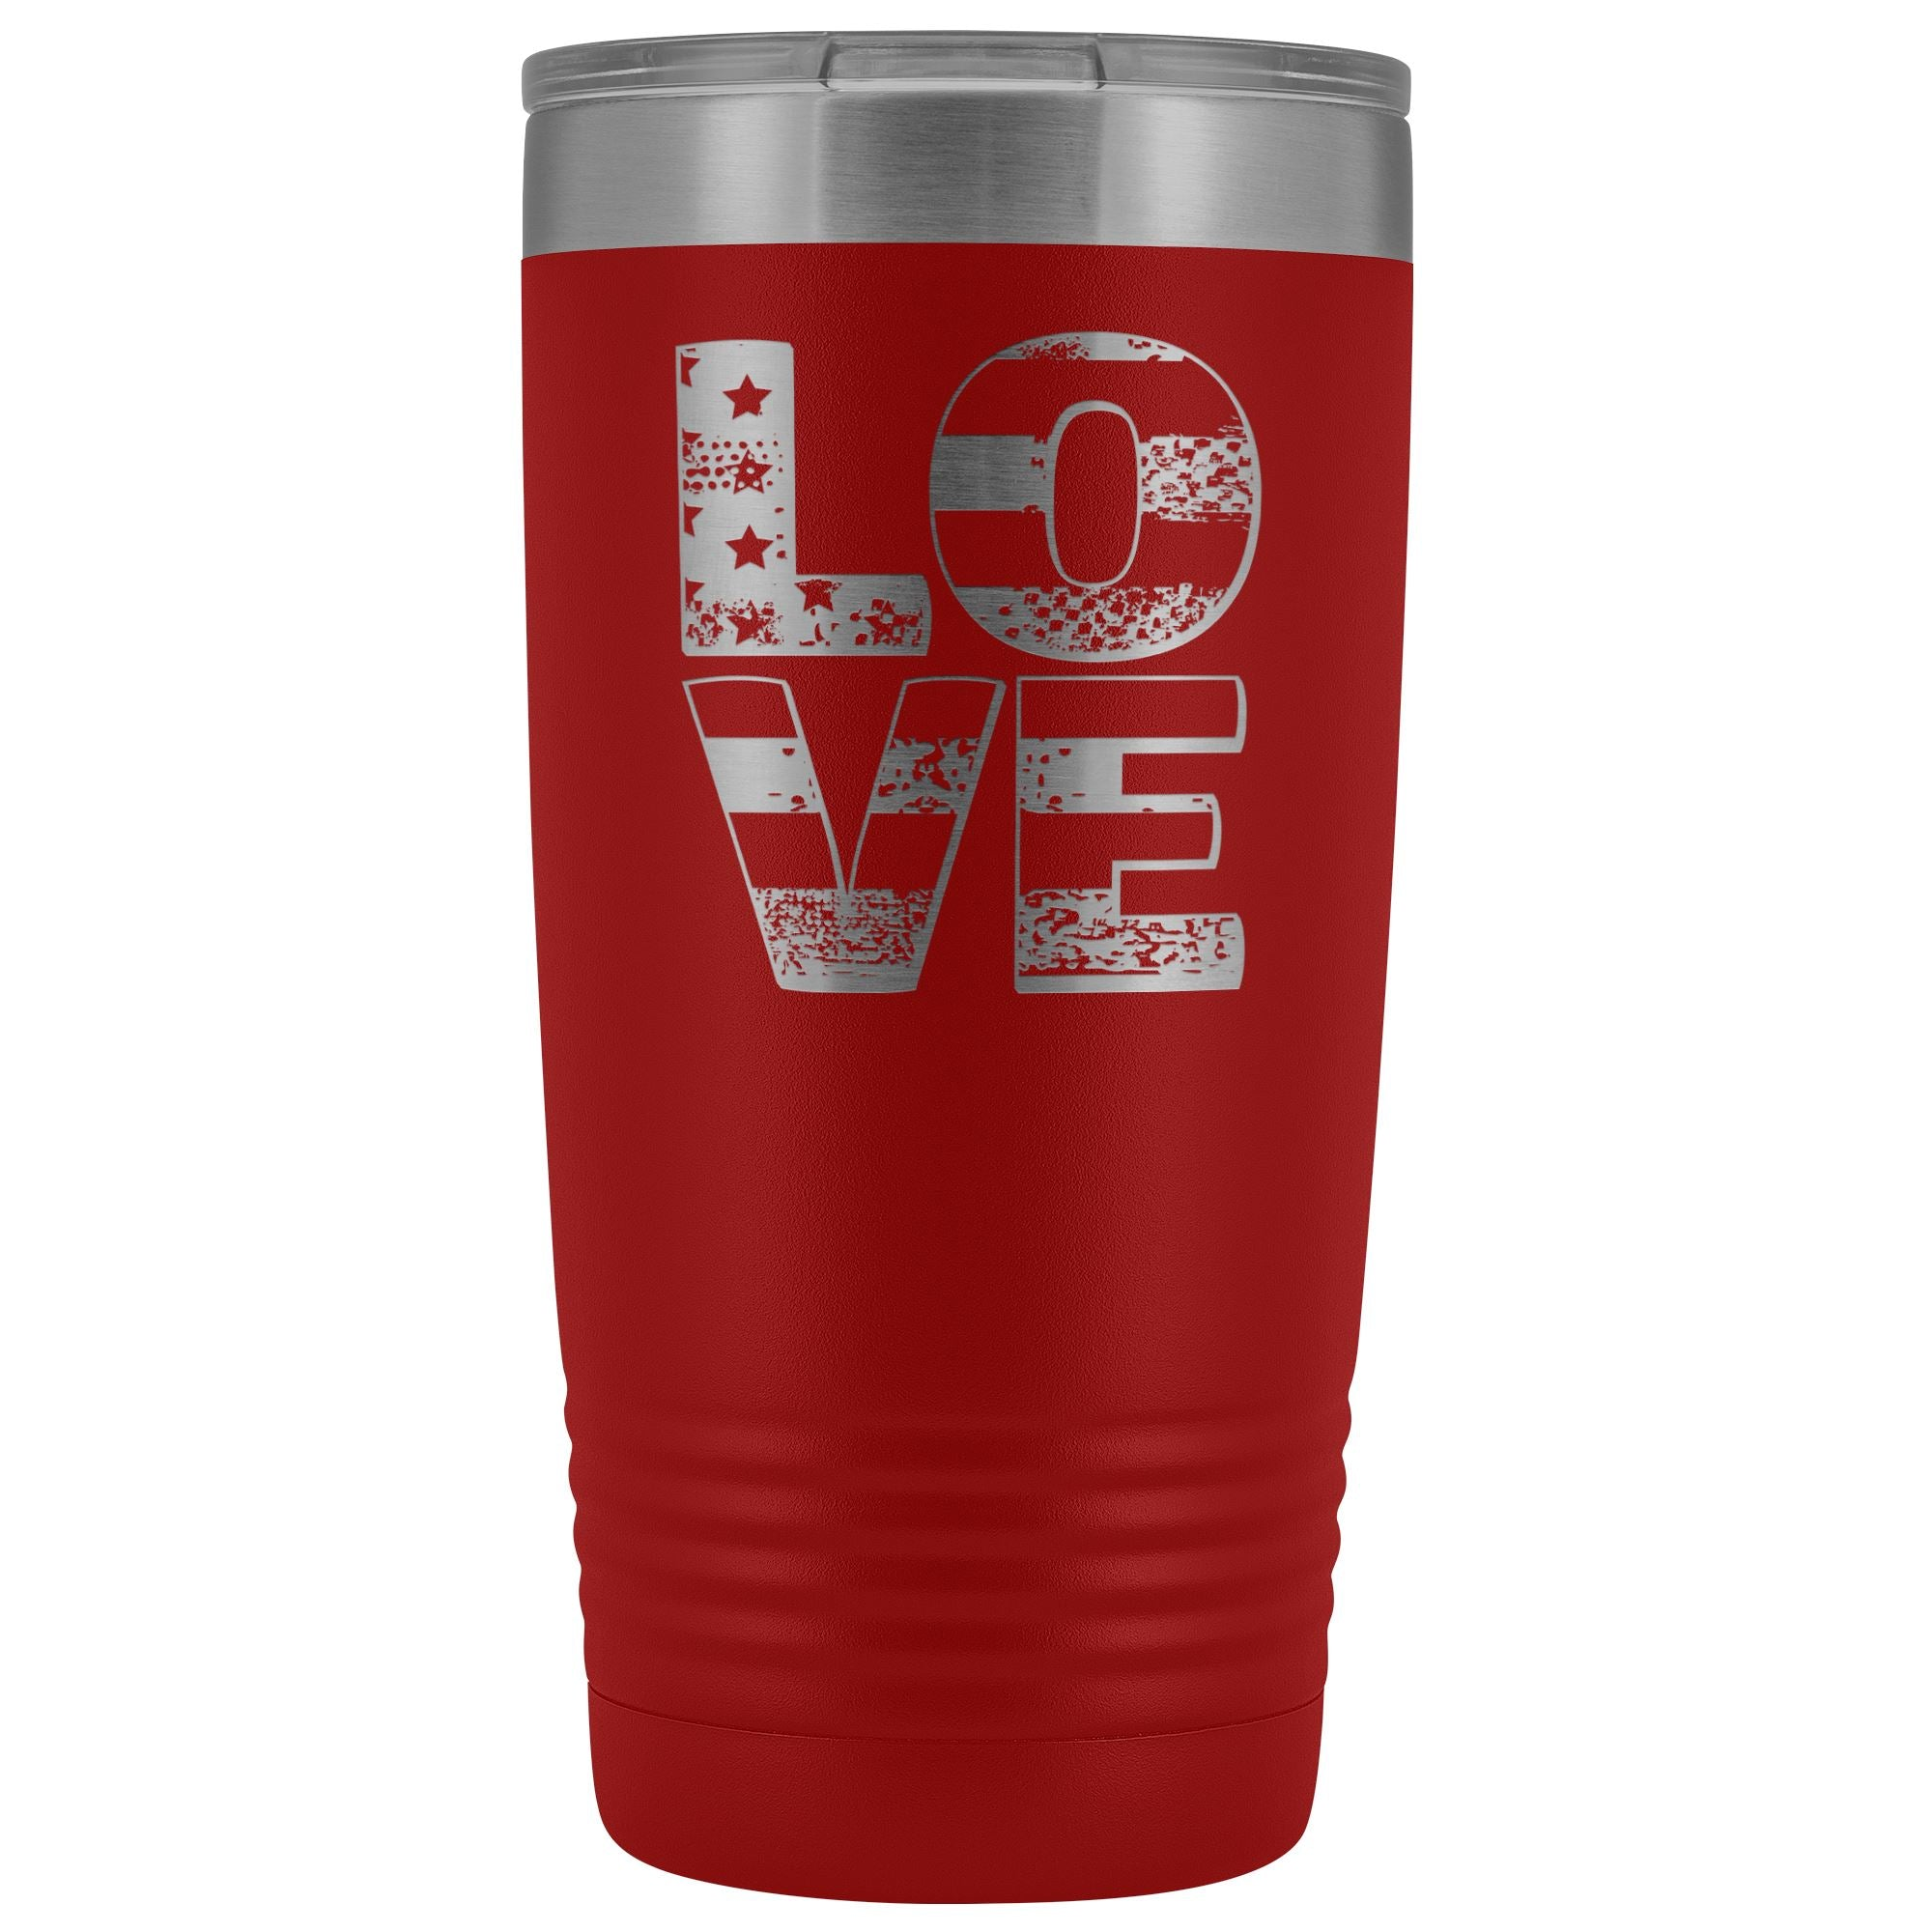 Patriotic Love • 20oz. Insulated Travel Coffee Mug Tumblers teelaunch Red